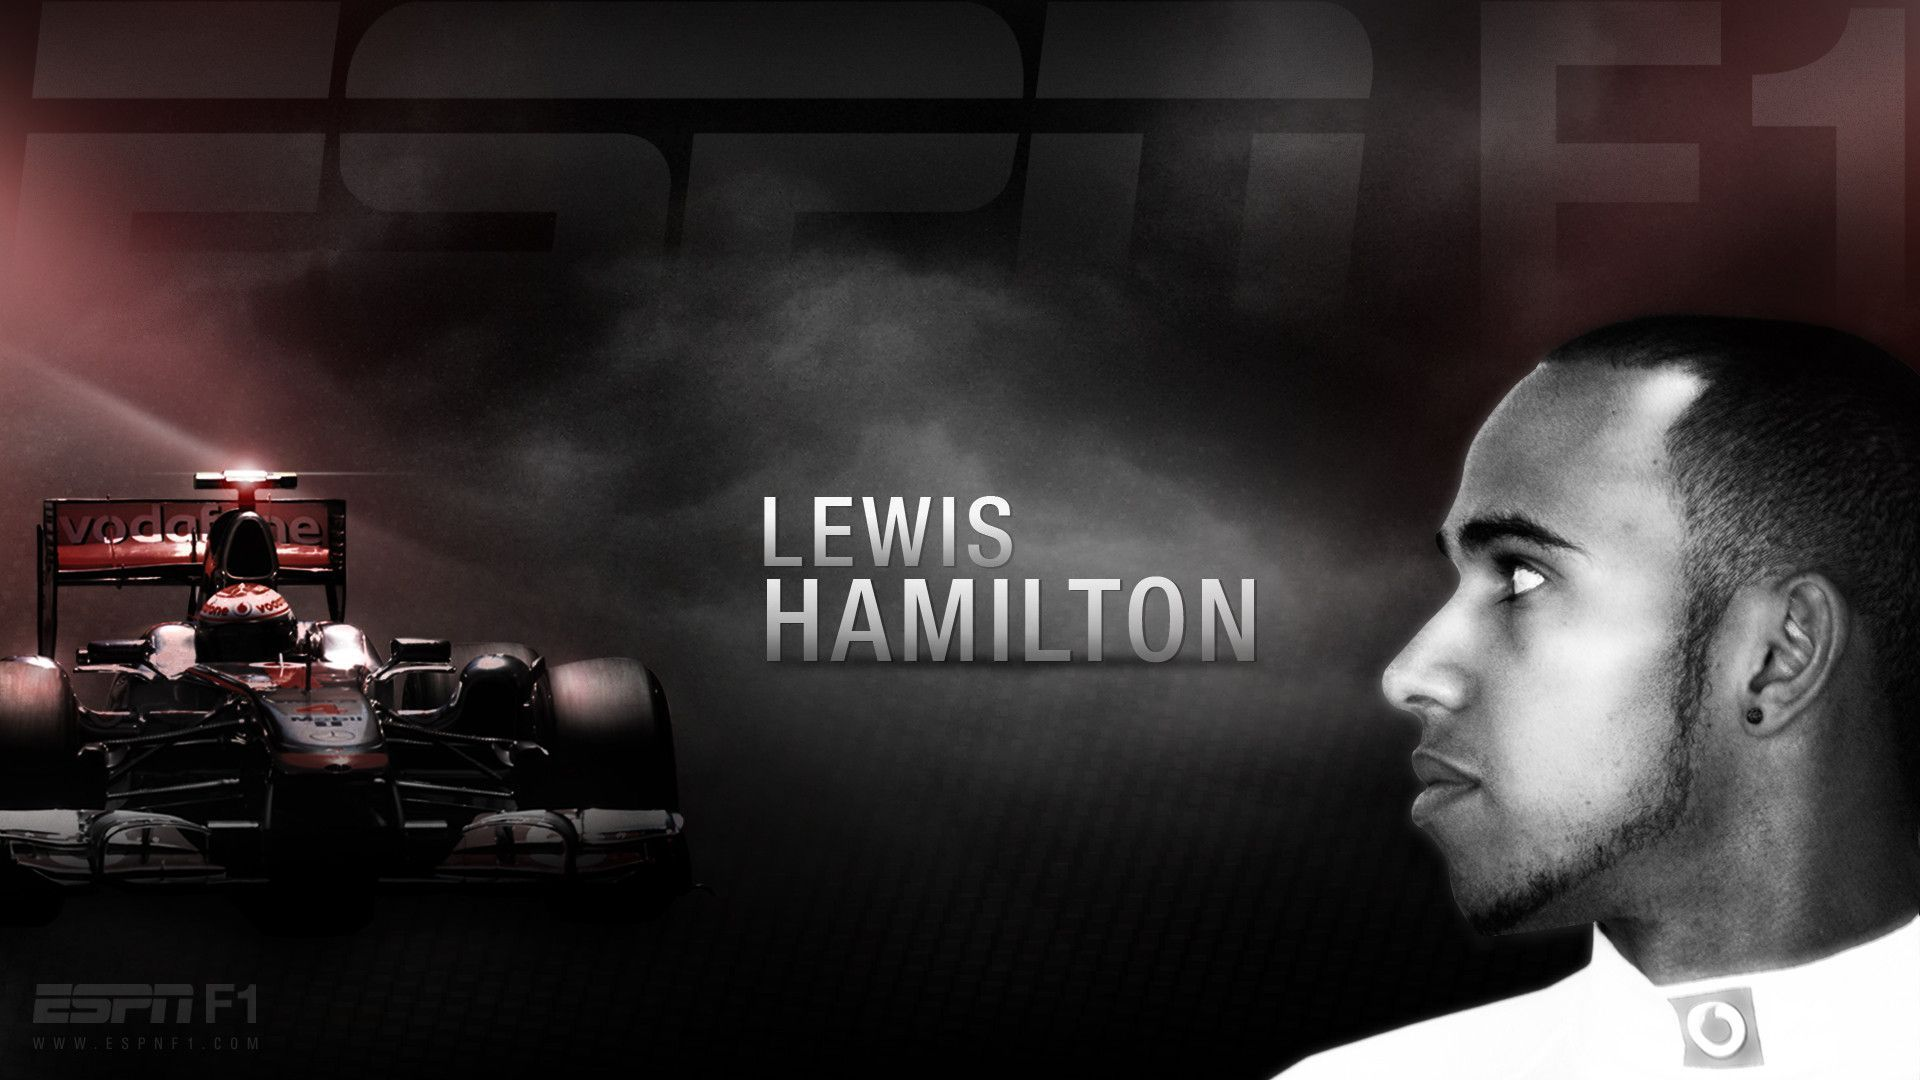 Anime Fighting Wallpaper Lewis Hamilton Hd Wallpapers